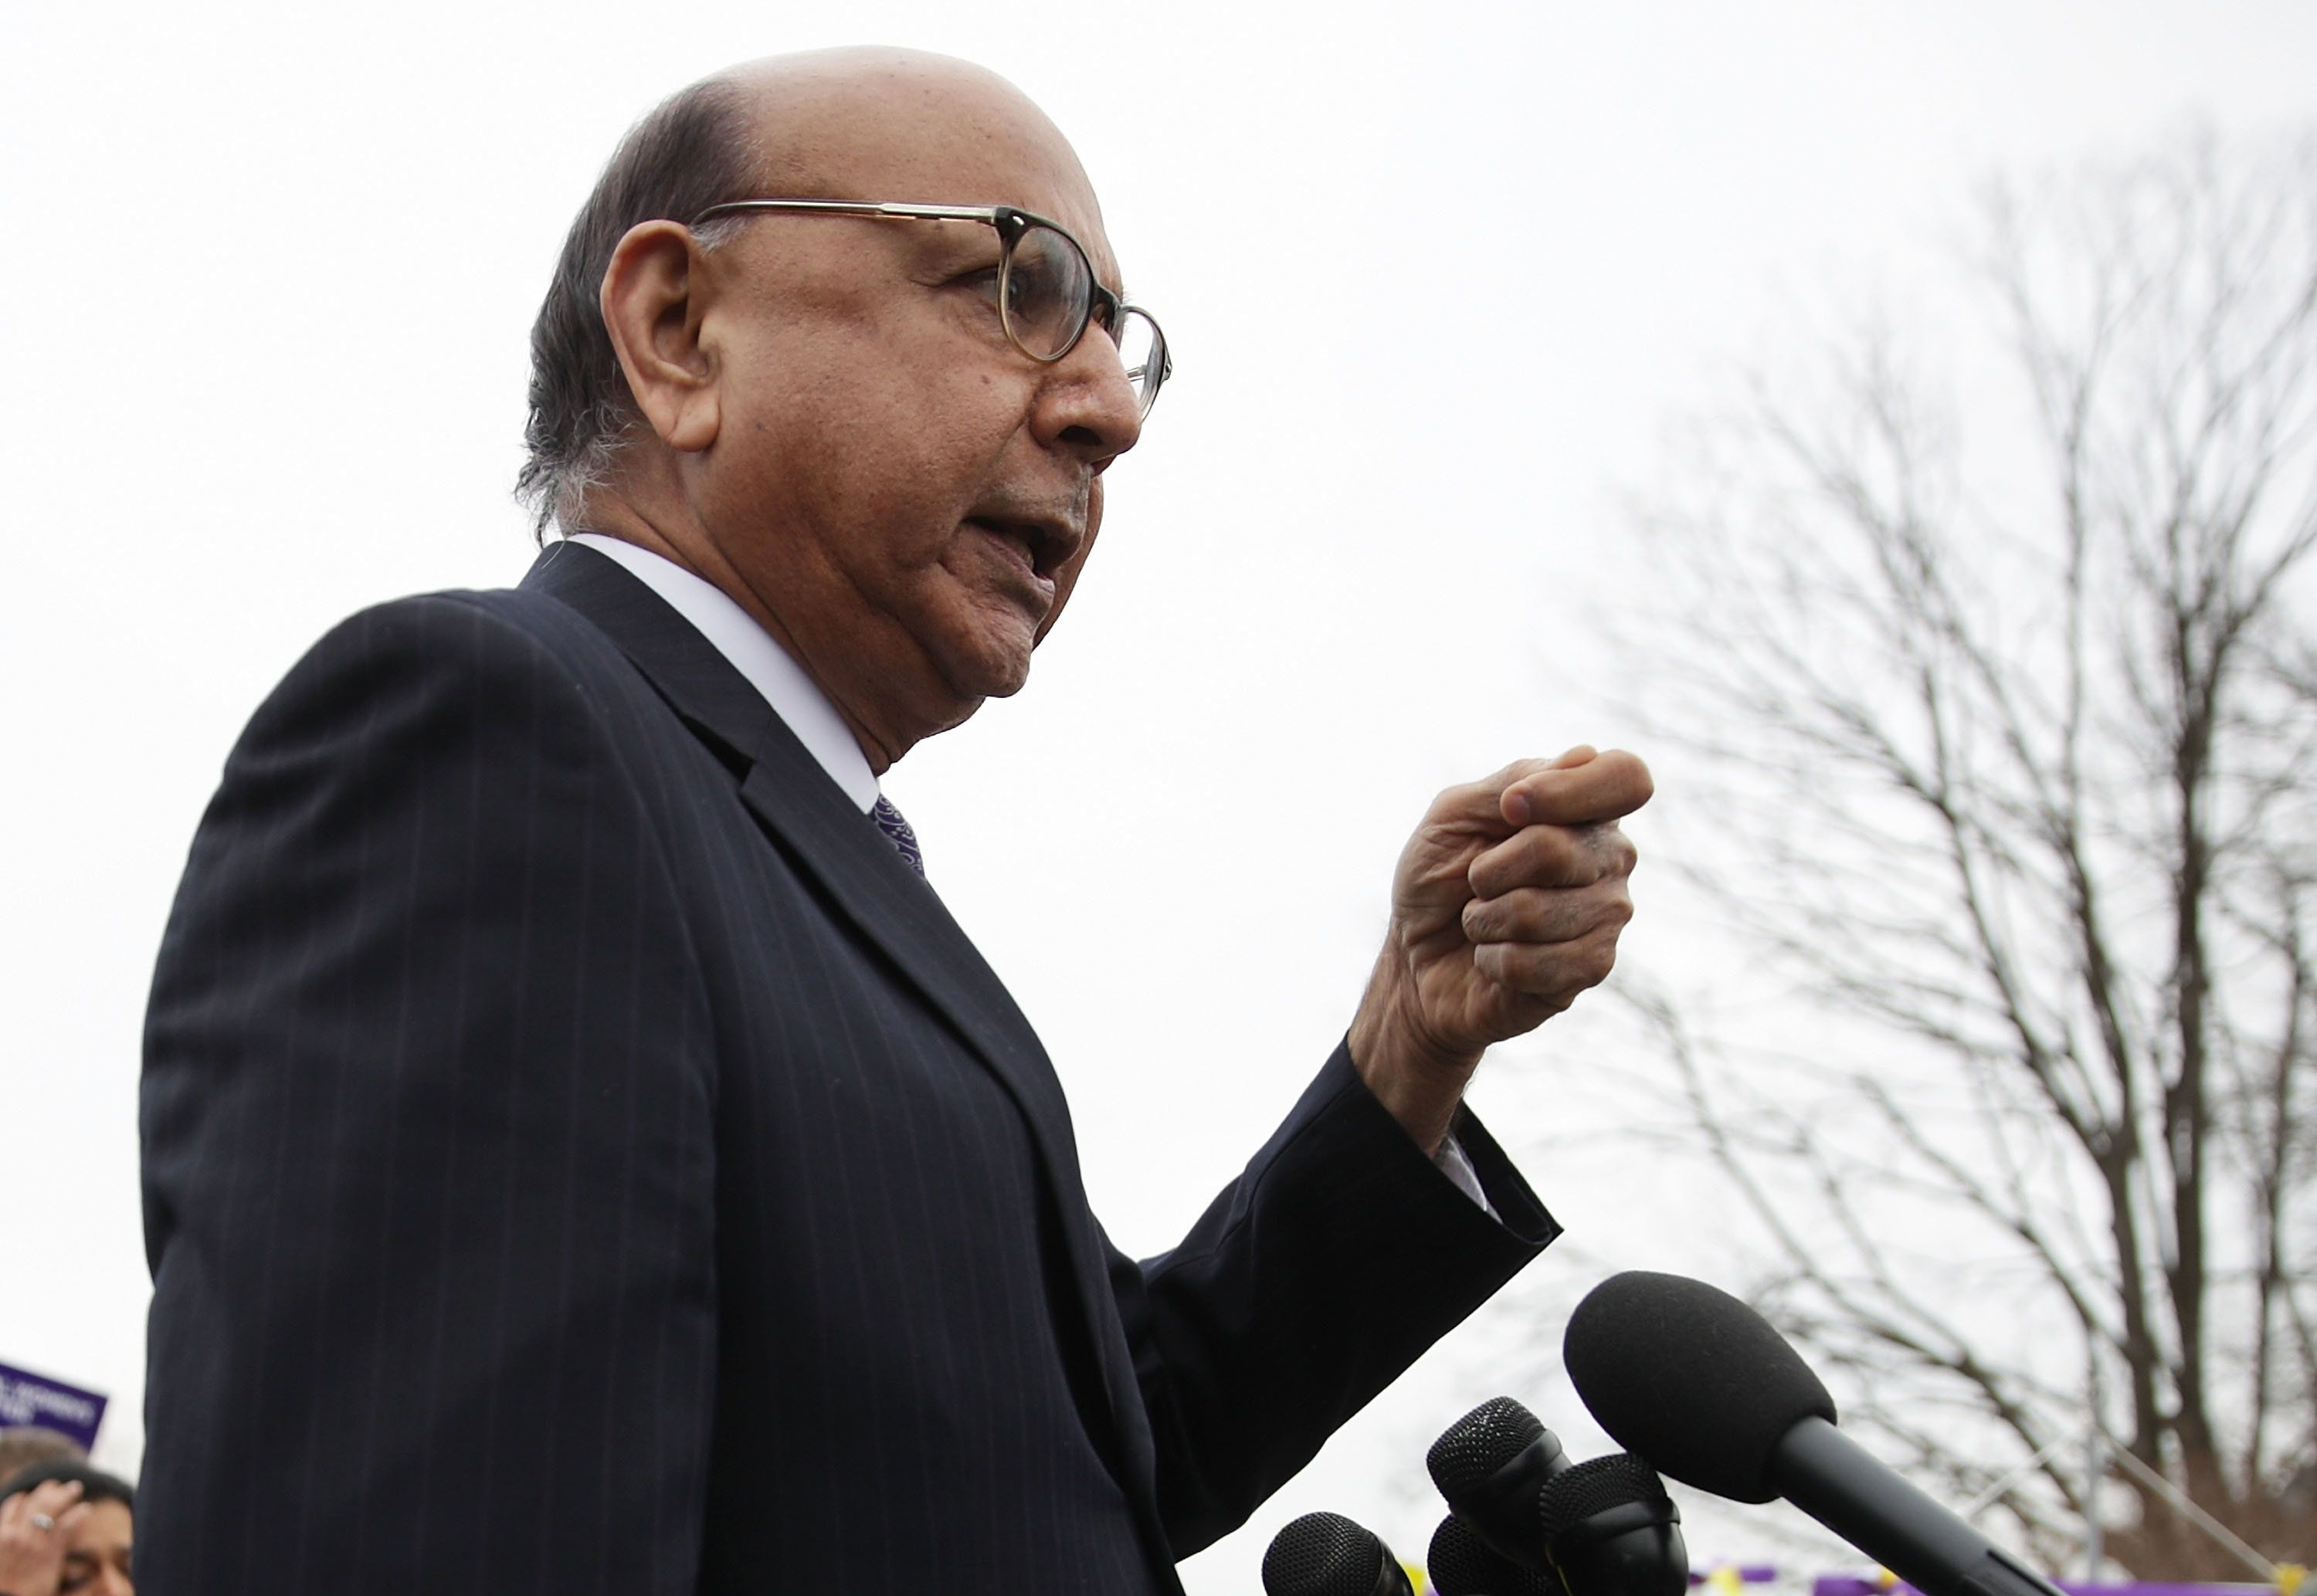 WASHINGTON, DC - FEBRUARY 01:  Gold Star father Khizr Khan speaks during a news conference in front of the Capitol February 1, 2017 on Capitol Hill in Washington, DC. Rep. Keith Ellison (D-MN) hosted the press conference to discuss President Donald Trump's travel ban, which prevents immigrants and refugees from seven Muslim-majority countries from entering the U.S,  and objections to Senator Jeff Sessions' nomination to the position of Attorney General.  (Photo by Alex Wong/Getty Images)